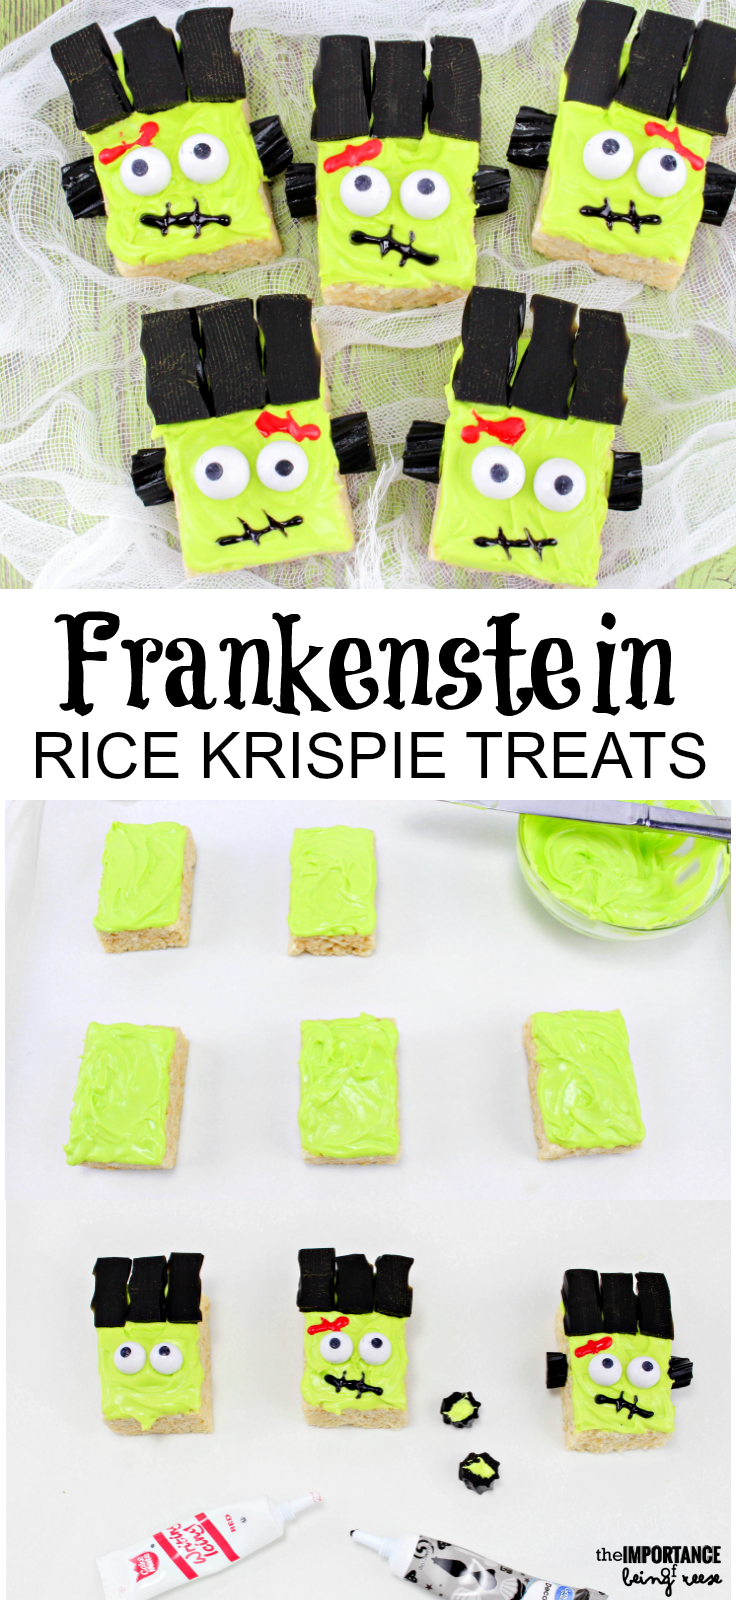 These Frankenstein Rice Krispie Treats are easy to make, and fun to eat!